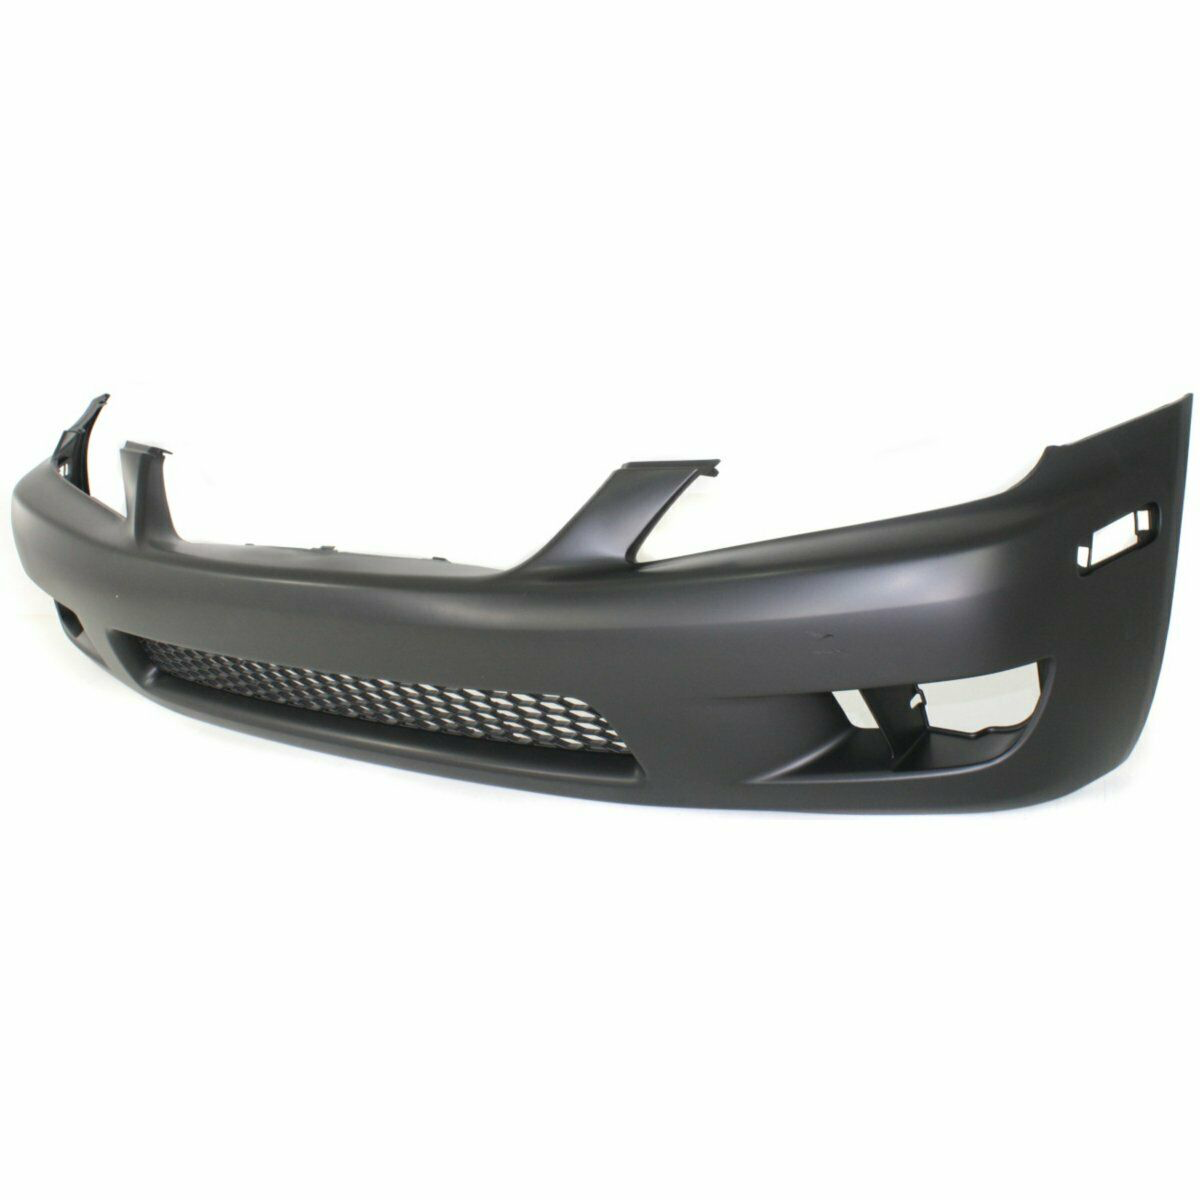 2001-2003 Lexus IS300 w/o HL Wash Front Bumper Painted to Match